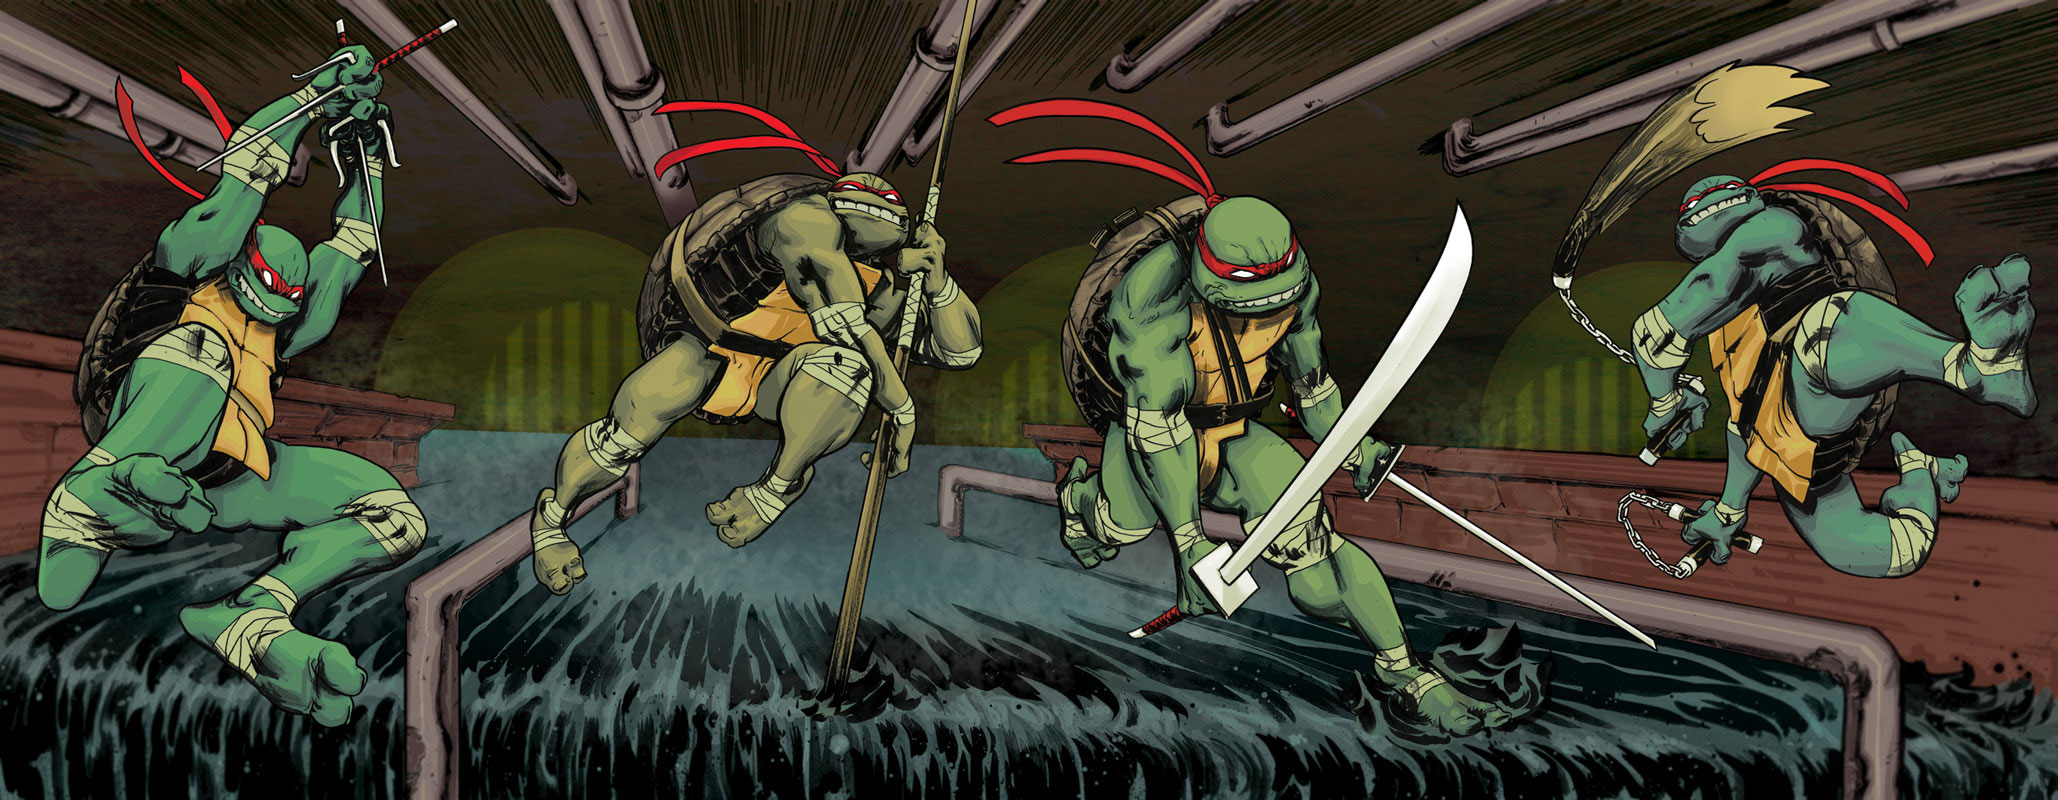 TMNT Backgrounds, Compatible - PC, Mobile, Gadgets| 2058x800 px